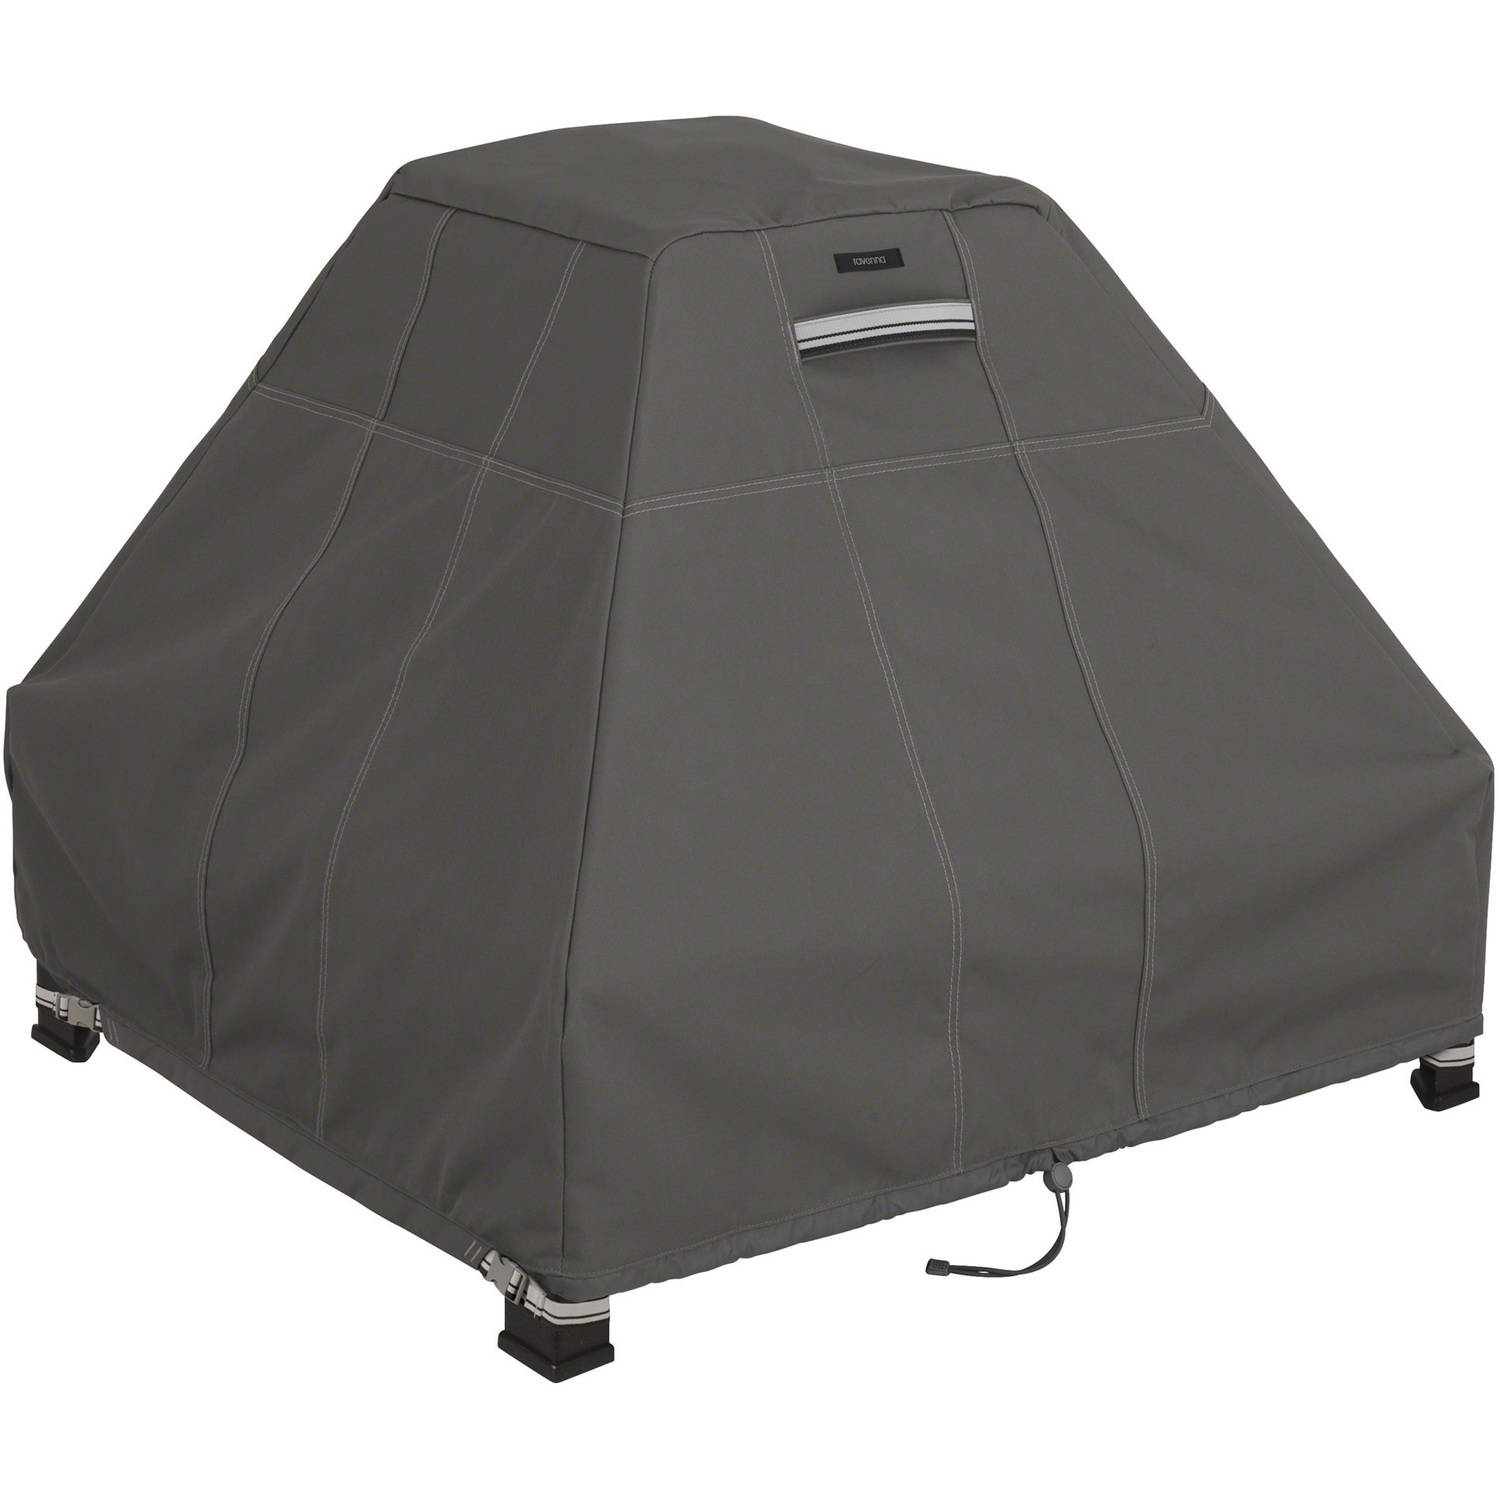 Classic Accessories Ravenna Fire Pit Stand Up Patio Storage Cover, Dark Taupe